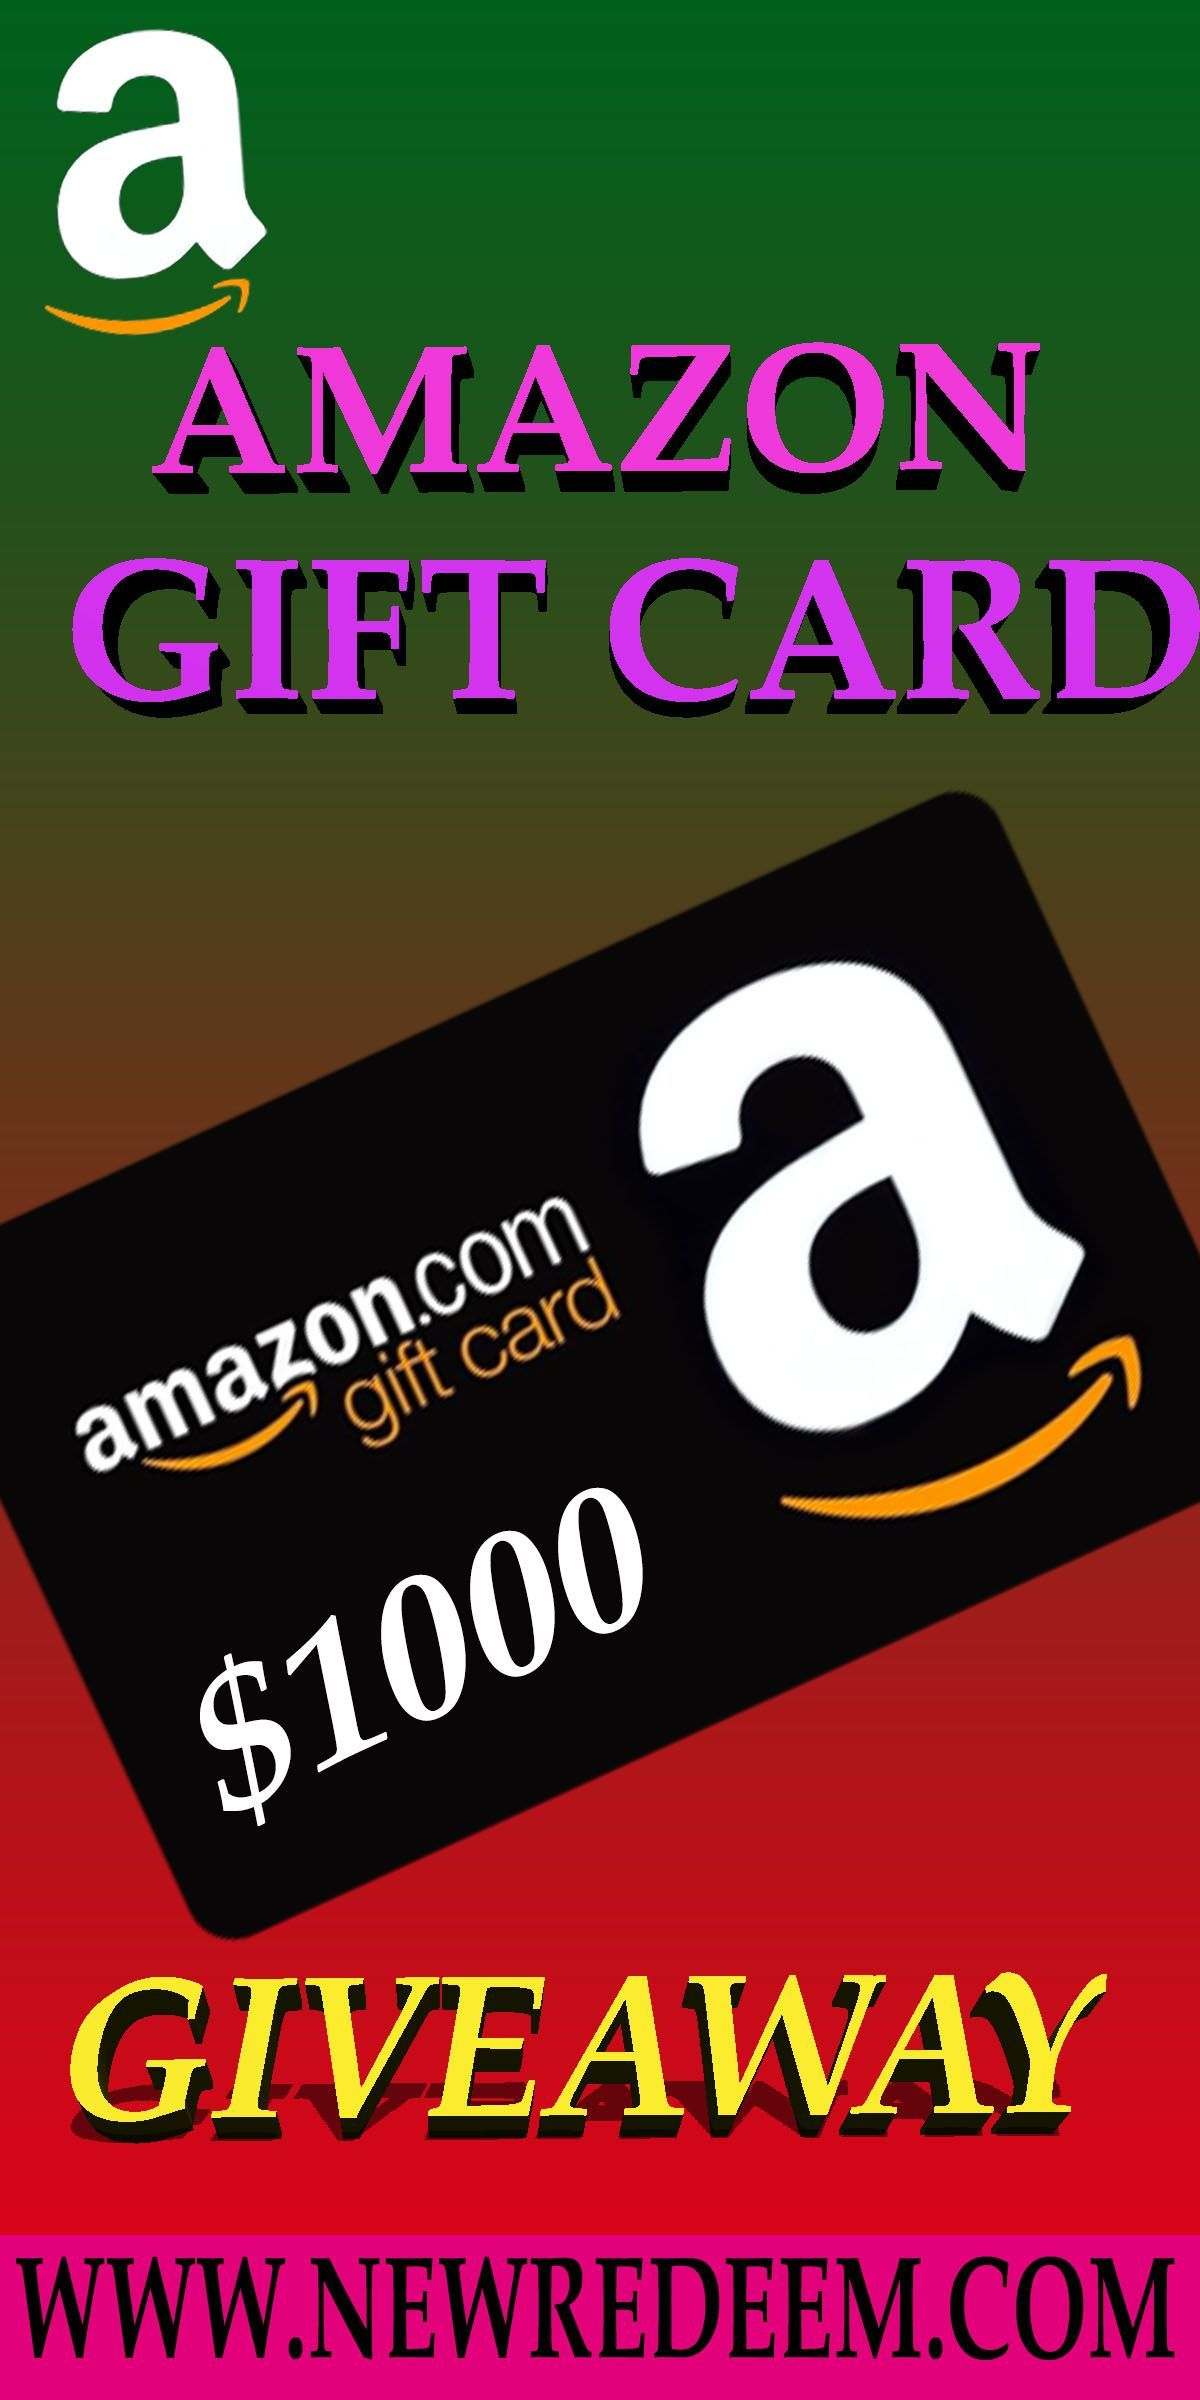 Free Amazon Cards Codes Gift How To Get Amazon Gift Cards For Free Amazon Gift Card Free Xbox Gift Card Amazon Gifts